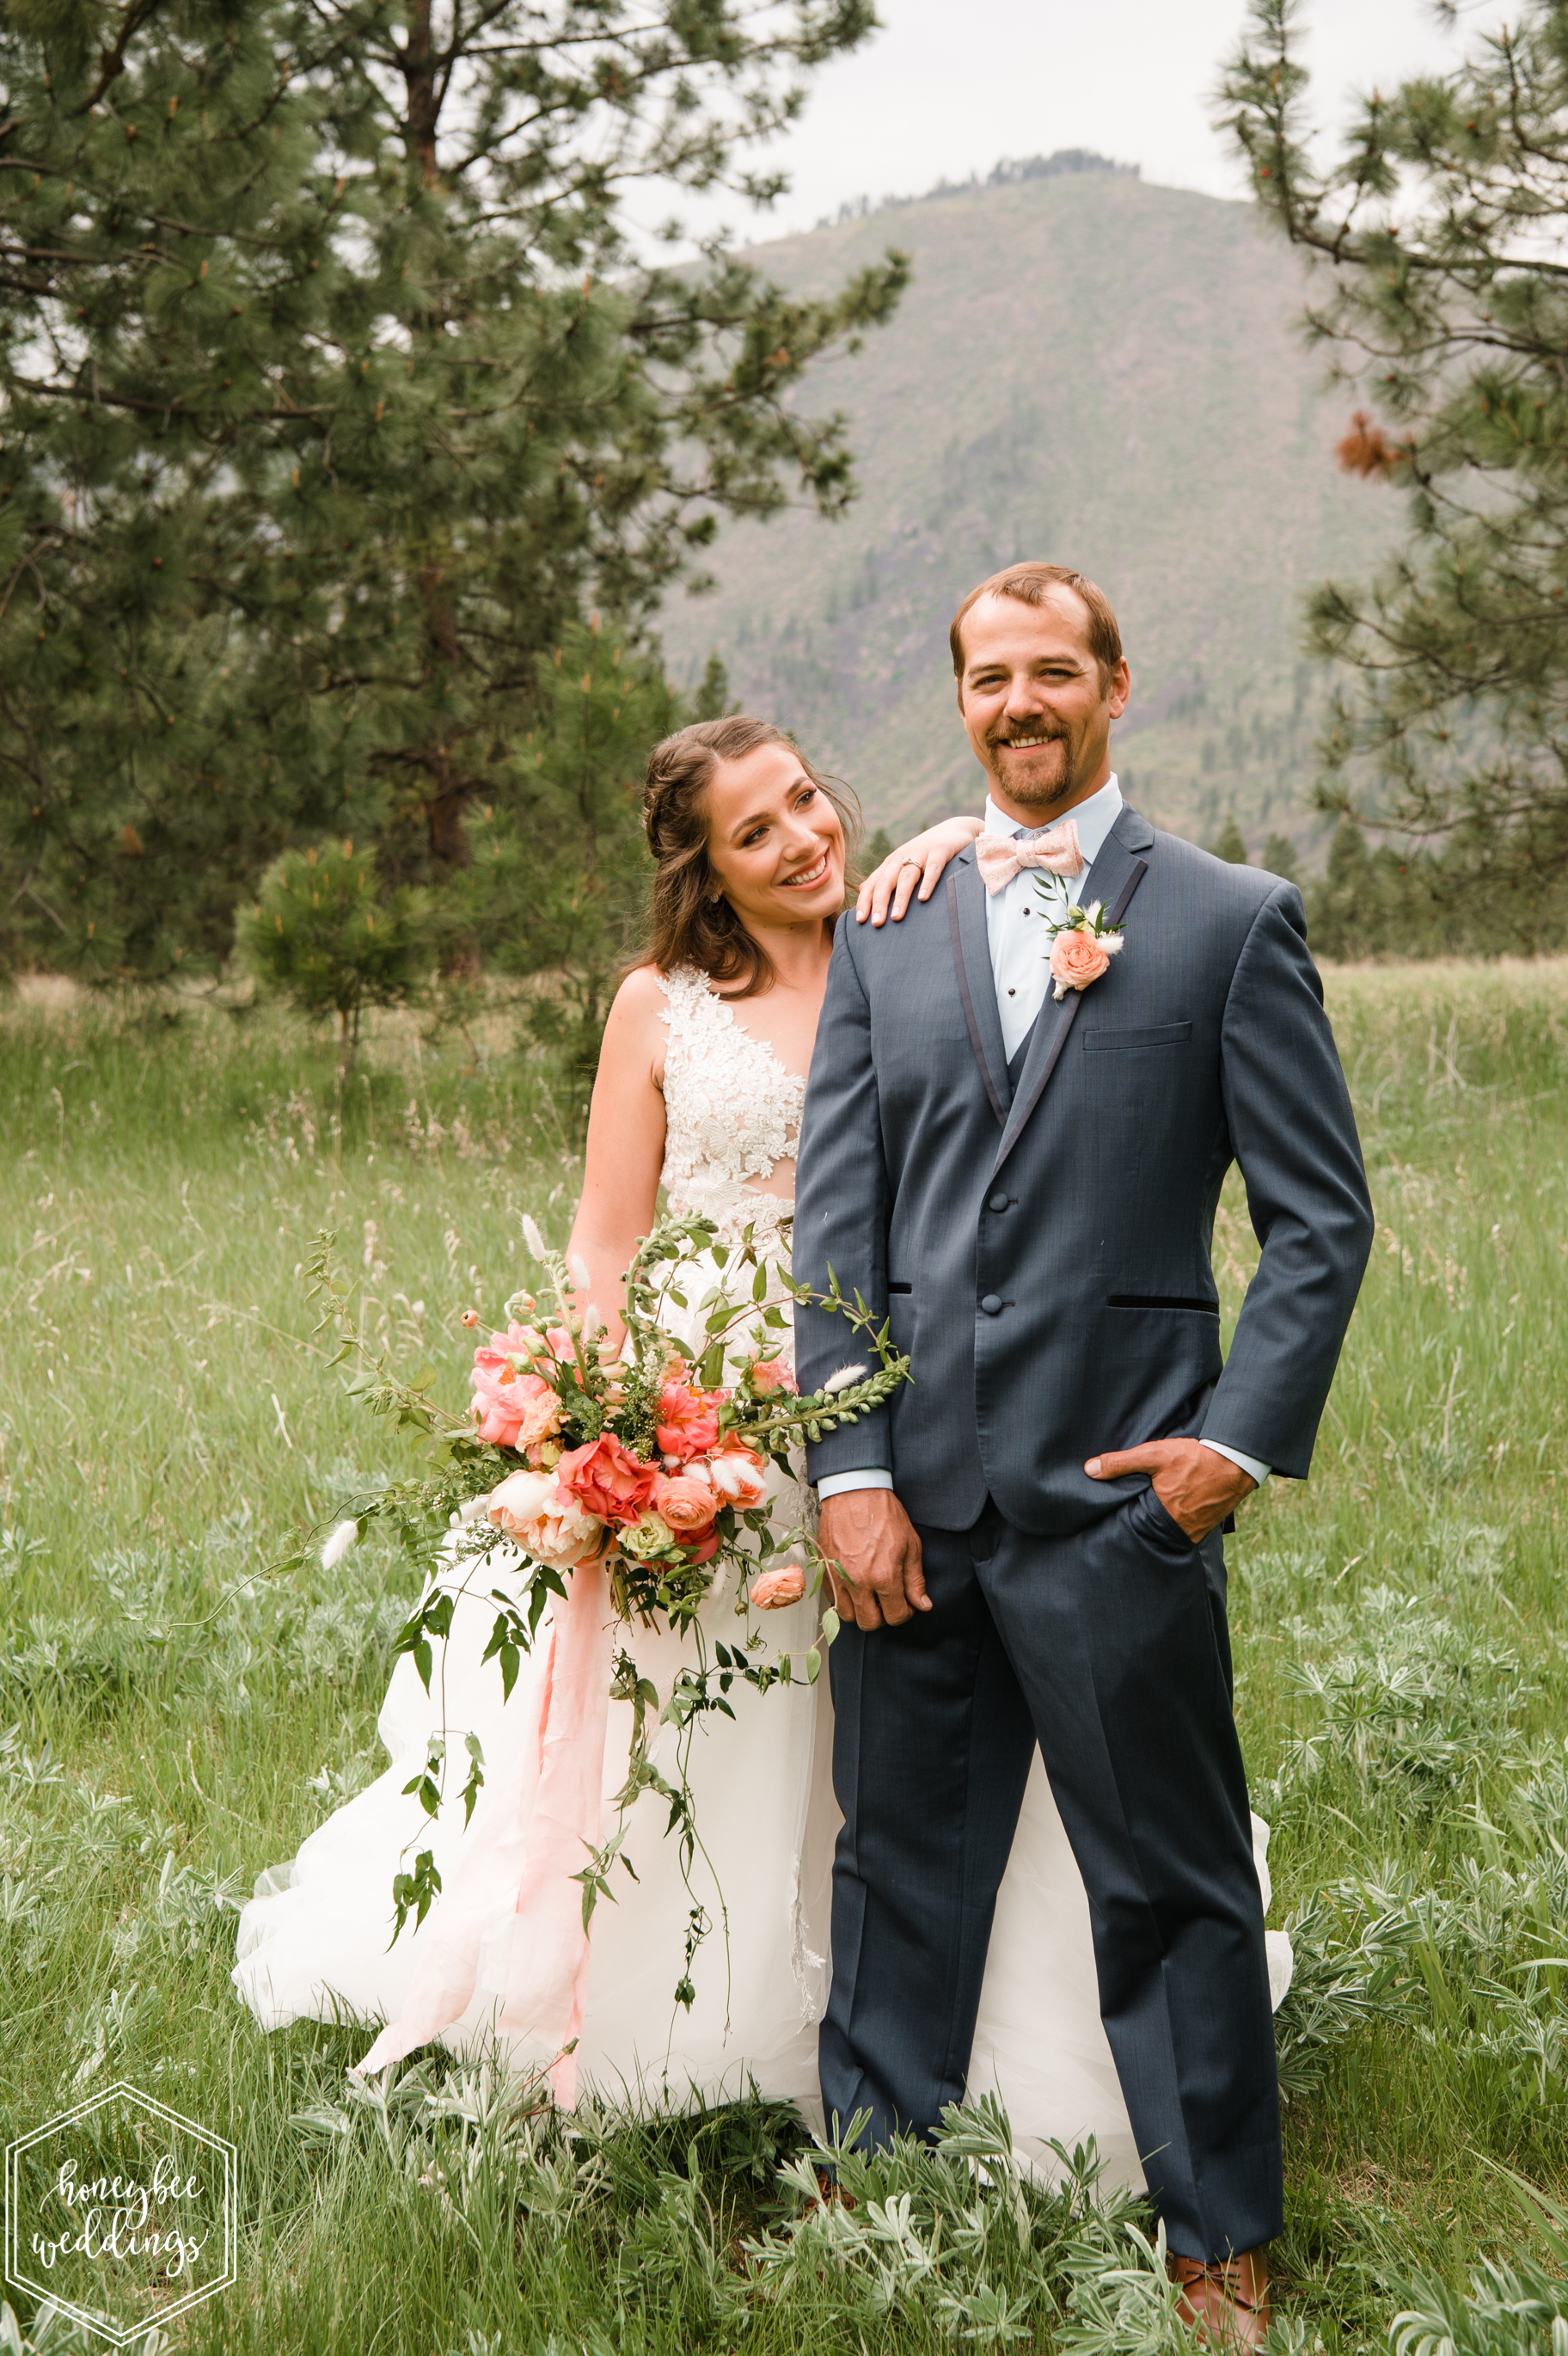 206Coral Mountain Wedding at White Raven_Honeybee Weddings_May 23, 2019-649.jpg